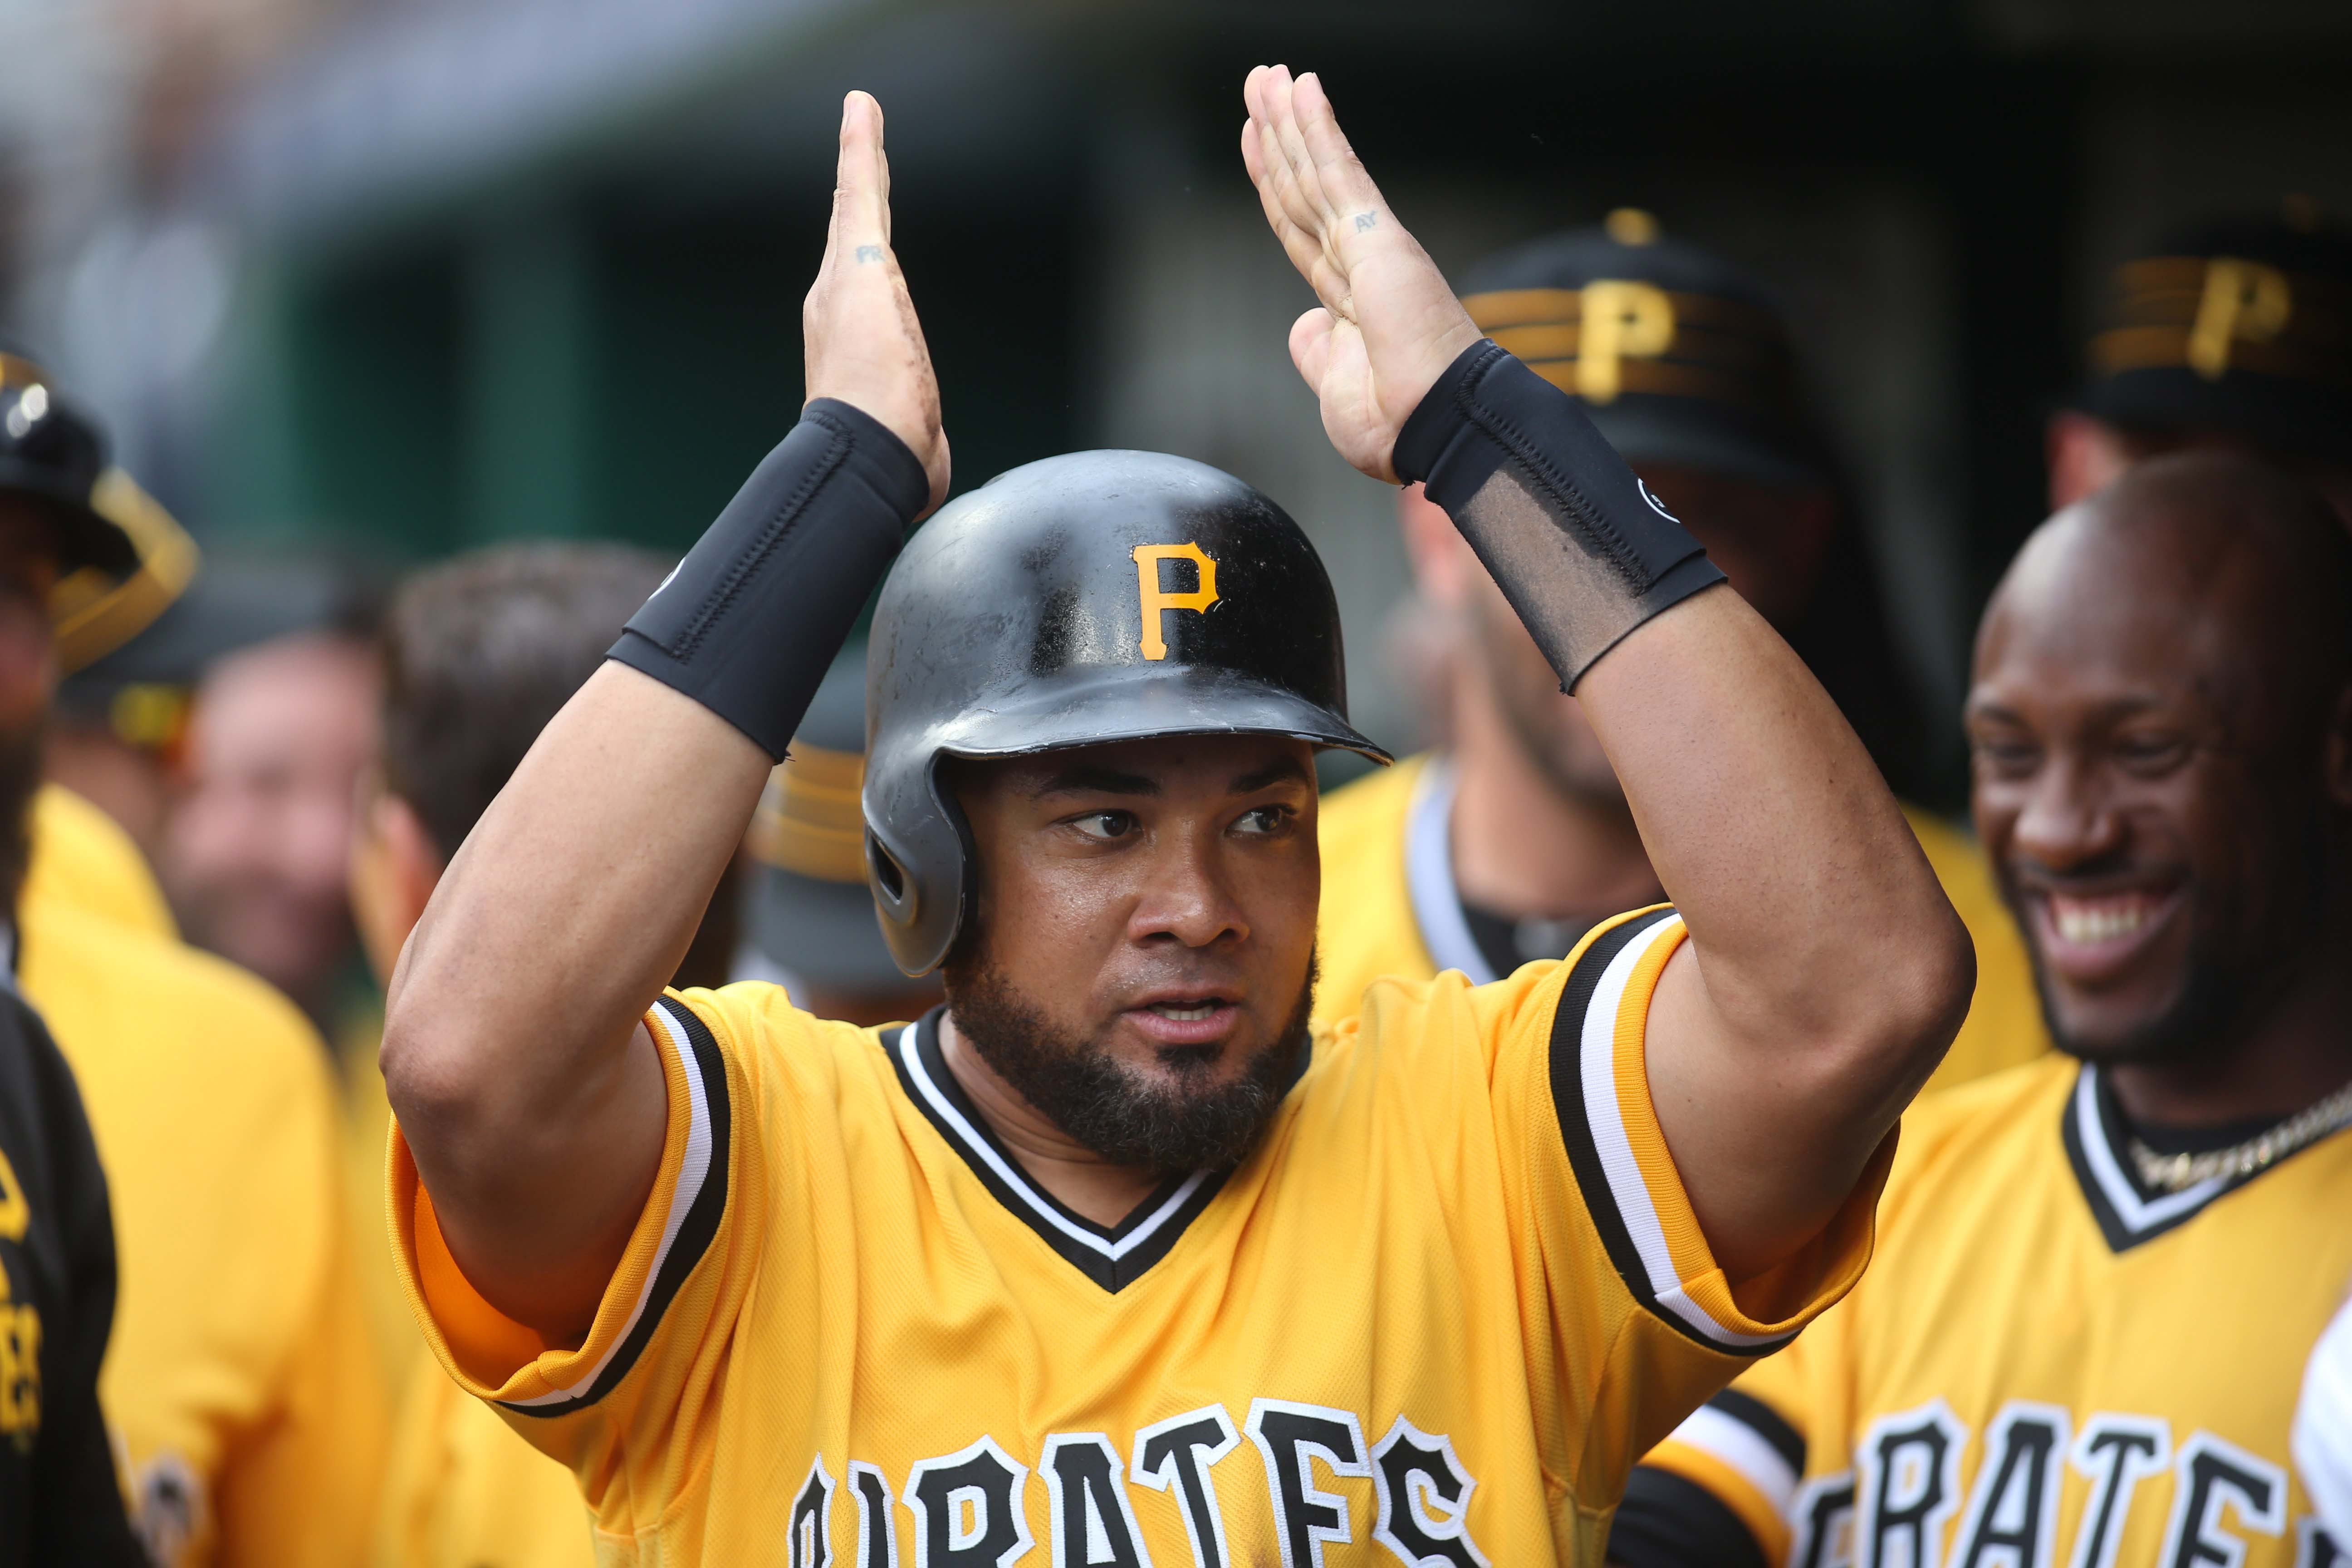 Why the Yankees Should Consider Signing Melky Cabrera